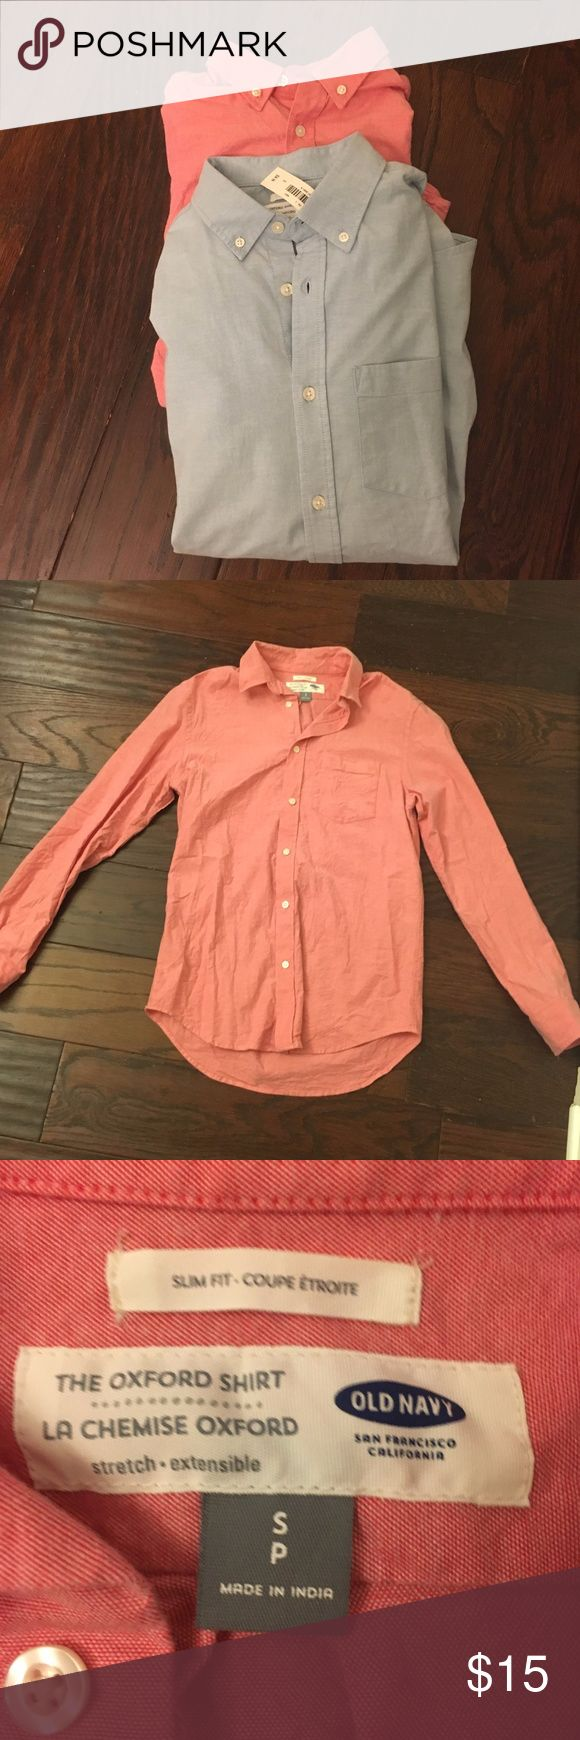 Set of Oxford Shirts Men's Size Small A coral and light blue slim fit men's button down in size Small. Super cute for men and women! The light blue Oxford still has tags. Old Navy Shirts Casual Button Down Shirts